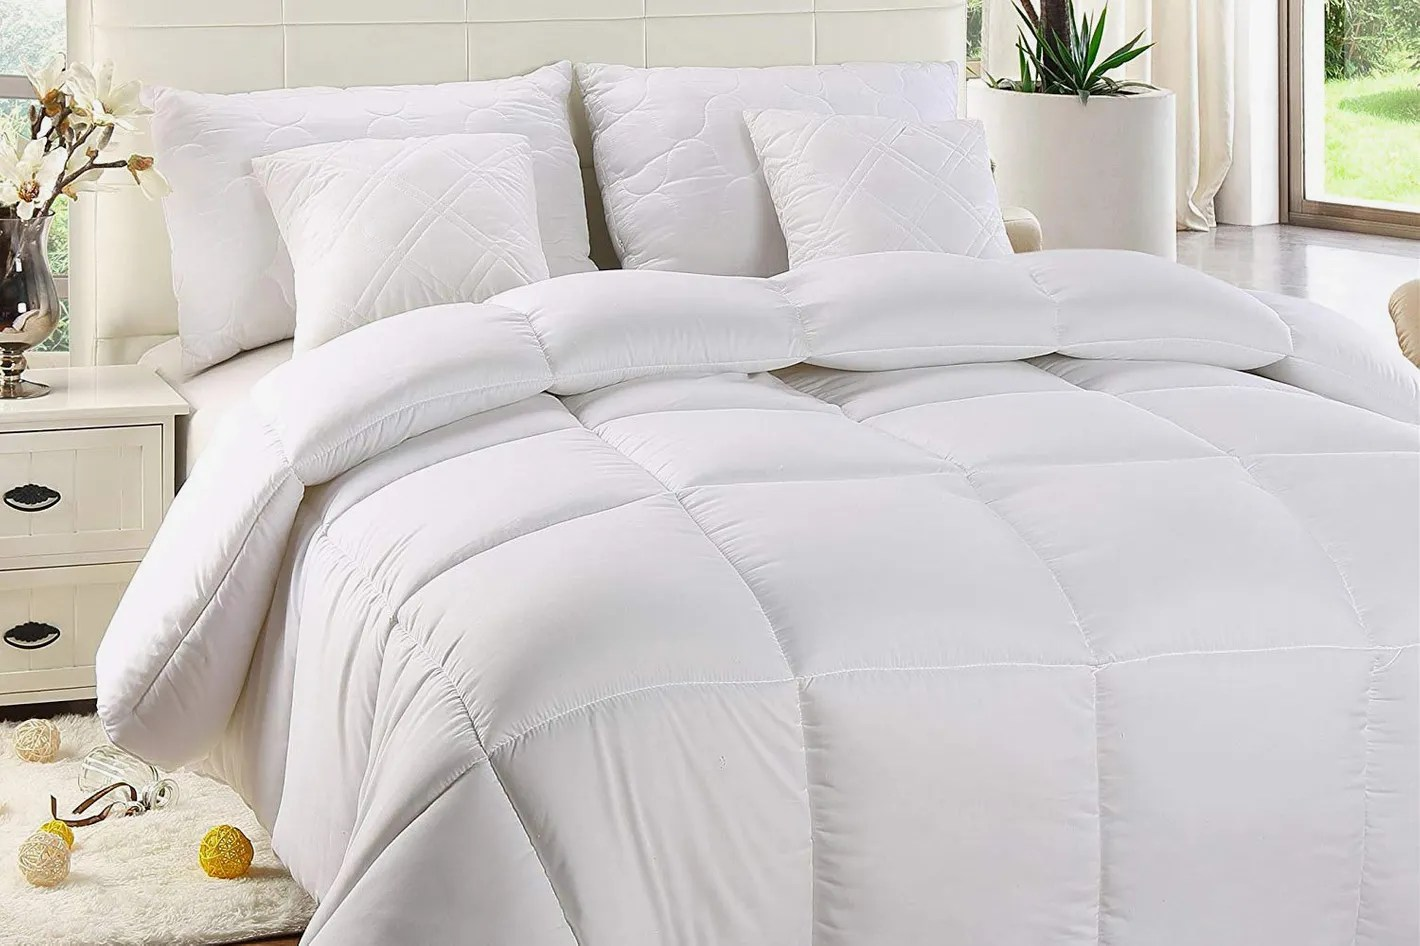 15 Best Down And Alternative Comforters